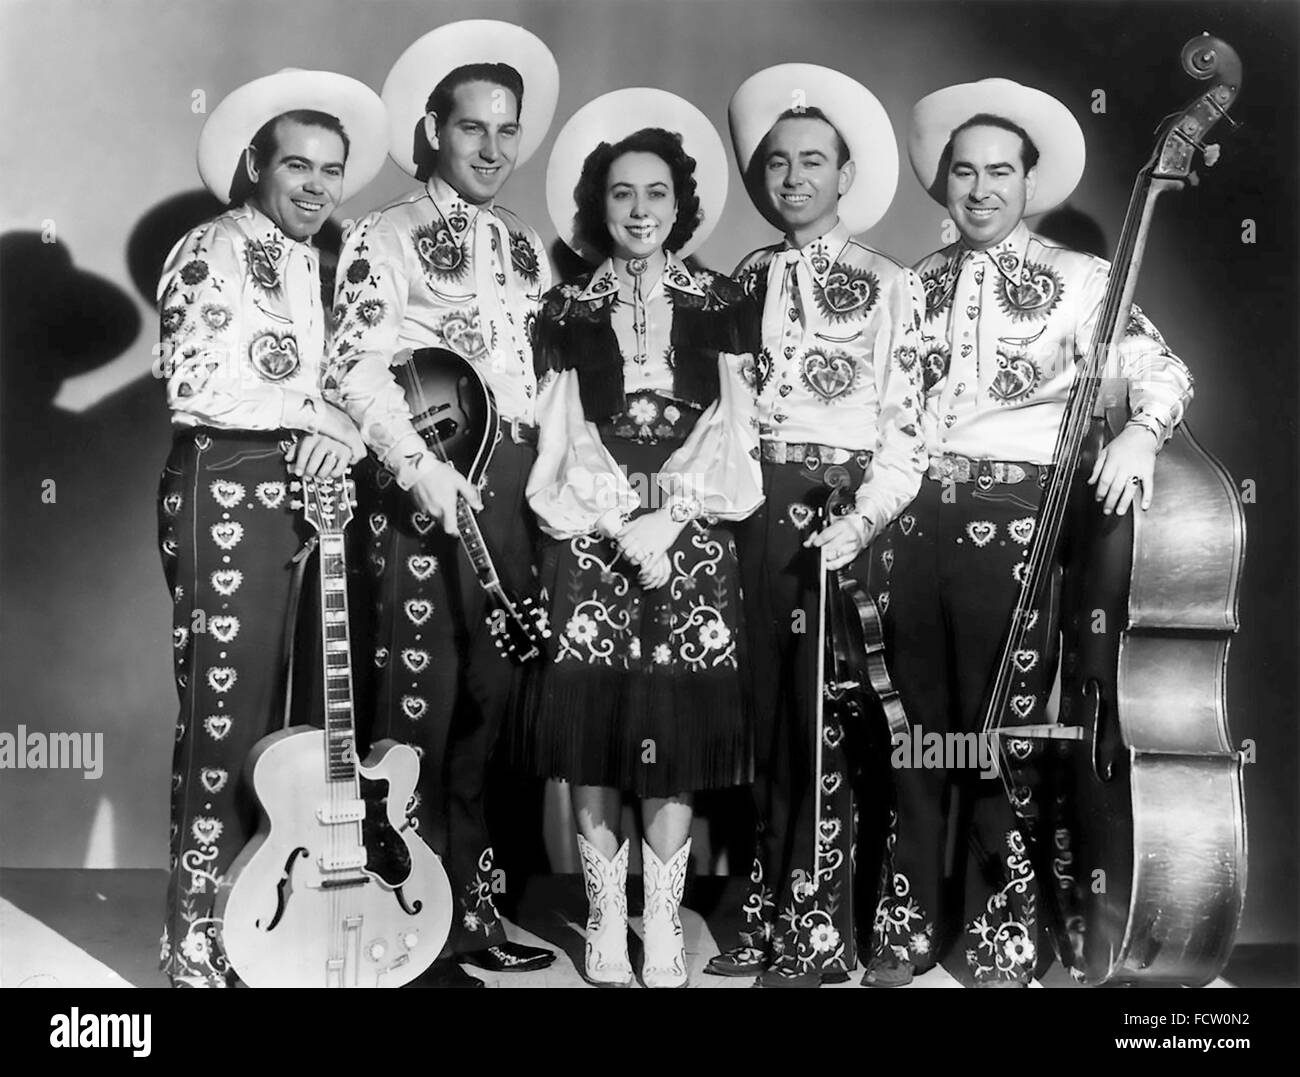 ROSE MADDOX (1925-1998) US Country and rockabilly musician with her group the Maddox Brothers. From left: Cal Maddox, - Stock Image